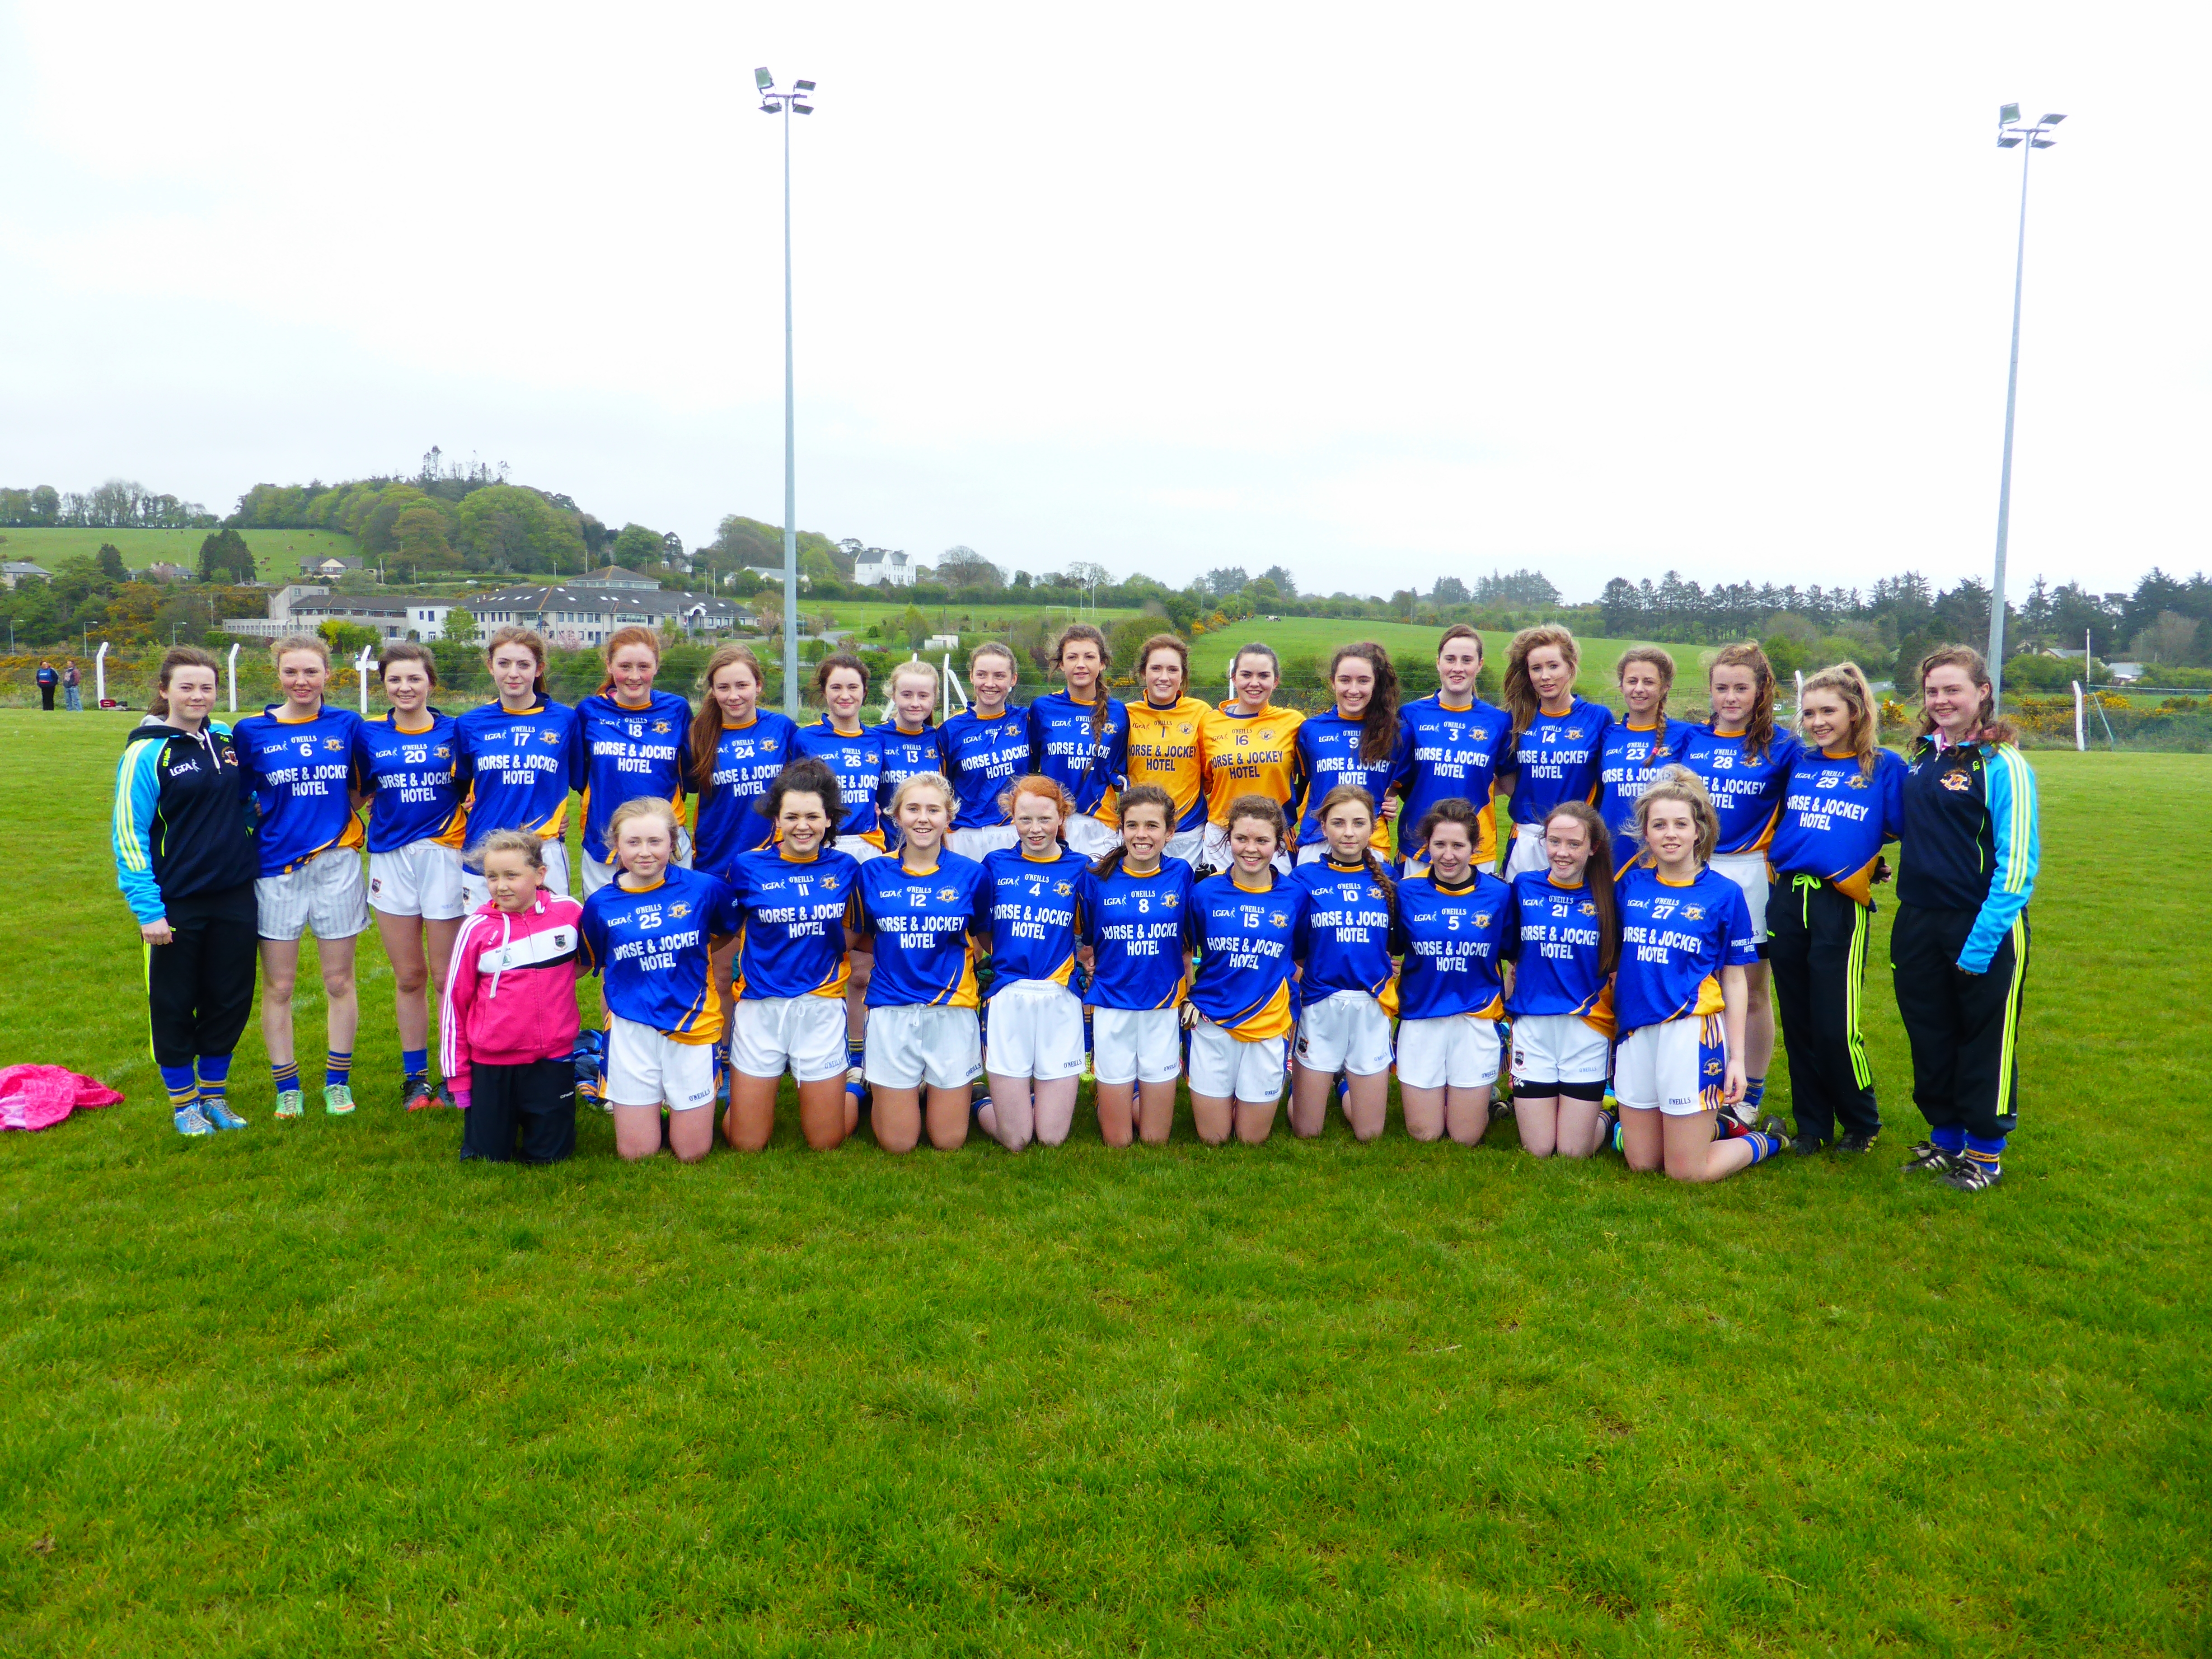 Tipperary News and Notes 13.05.2015 - Ladies Gaelic Football